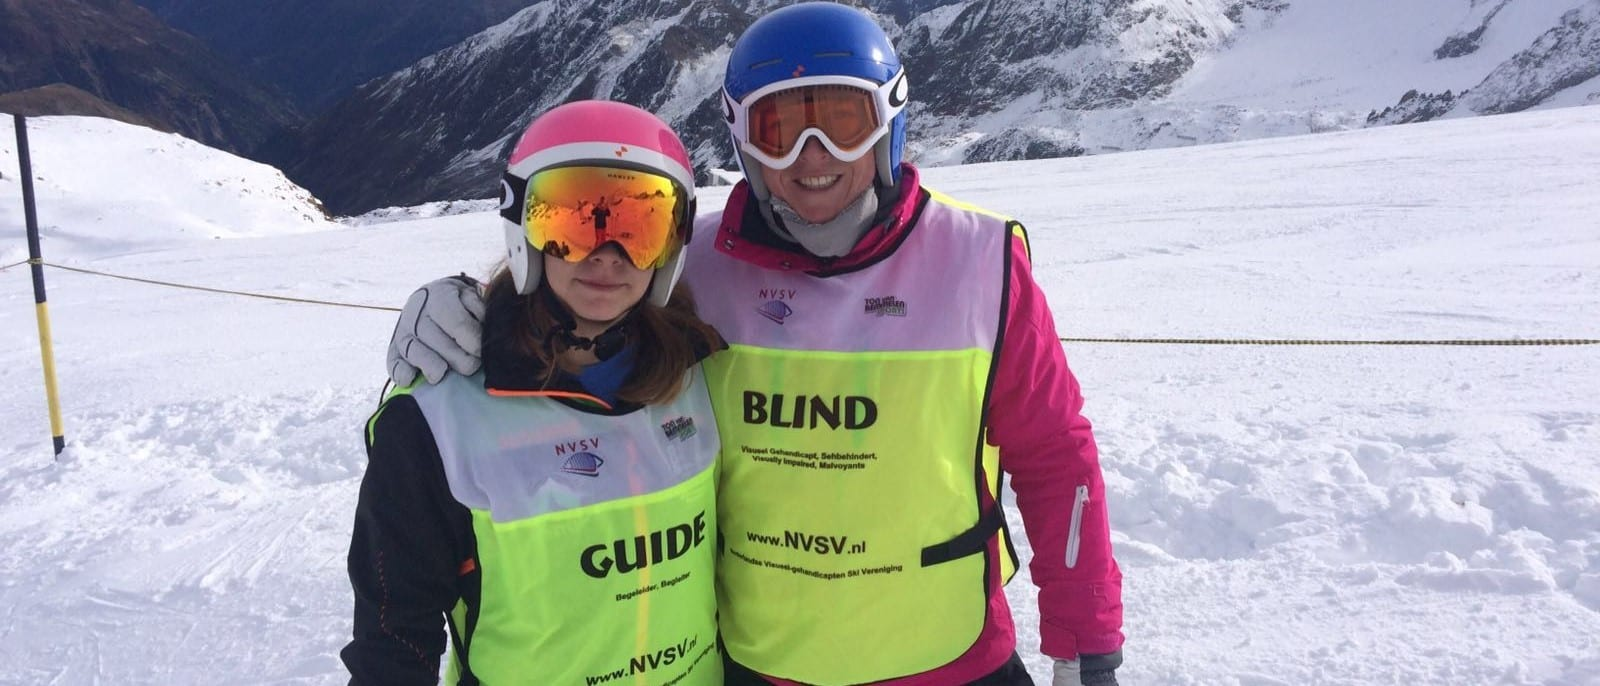 /wireless-communication-system-skiing-disabled-nvsv-axiwi